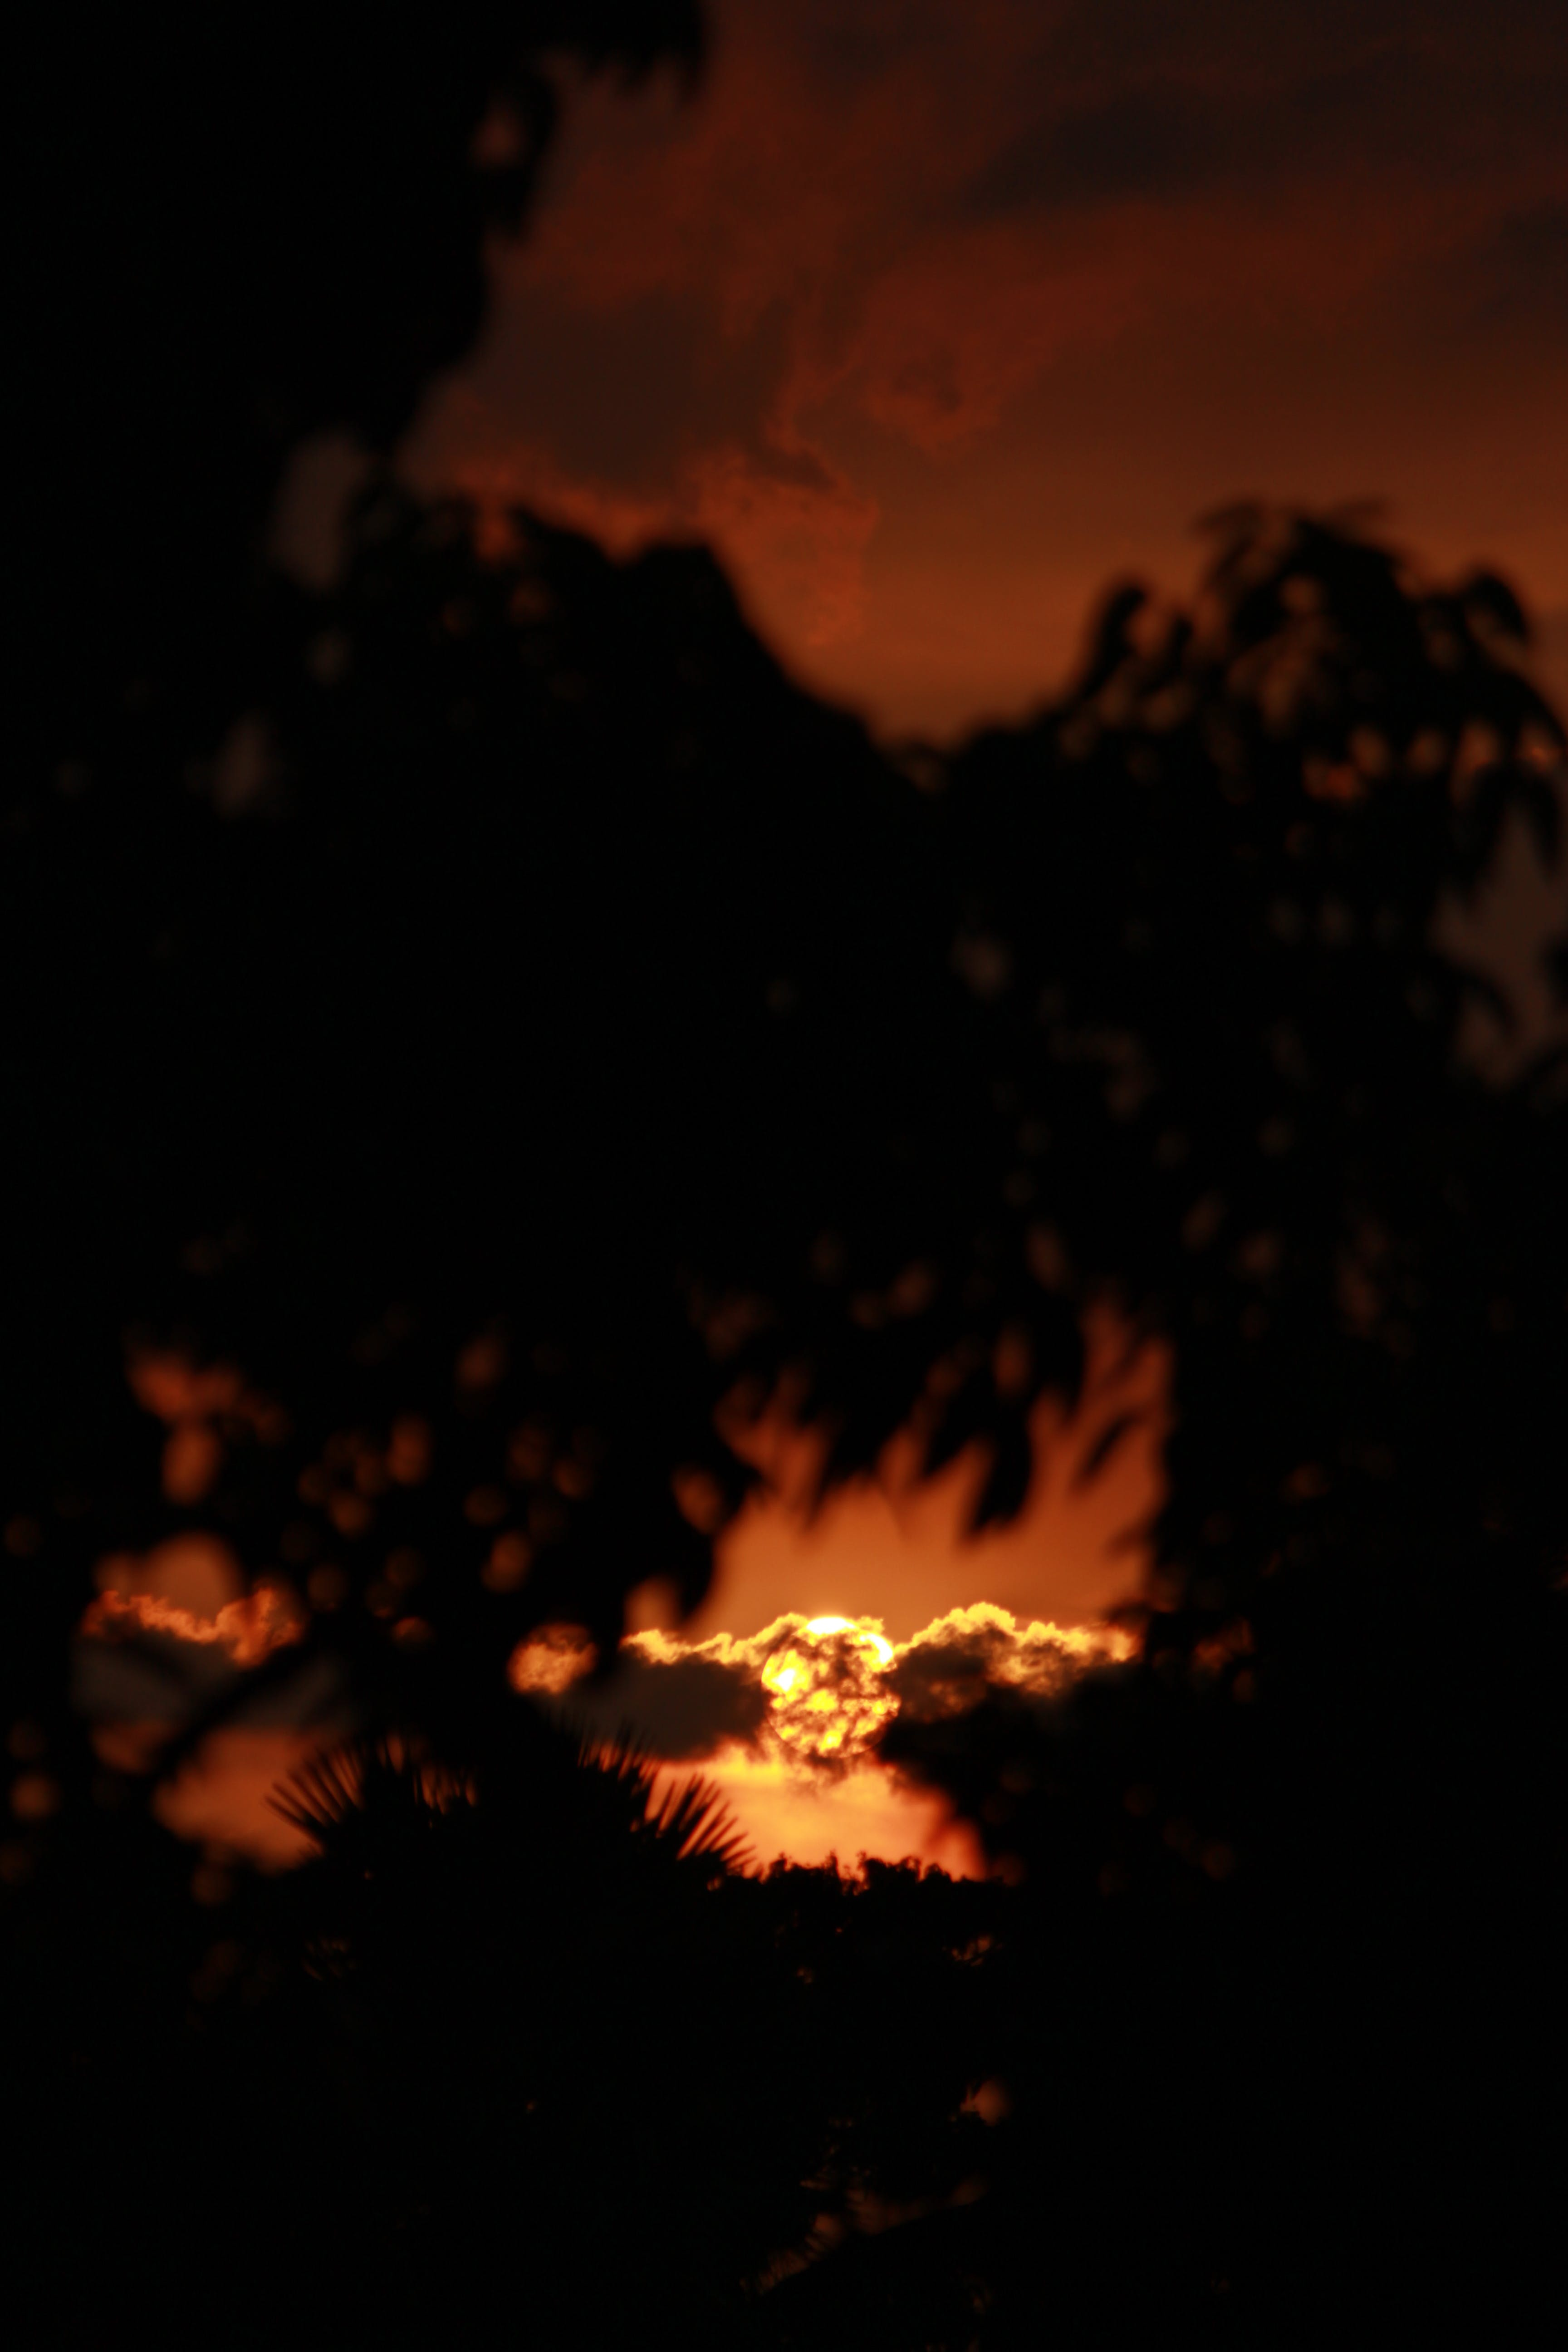 Silhouette of Leaves